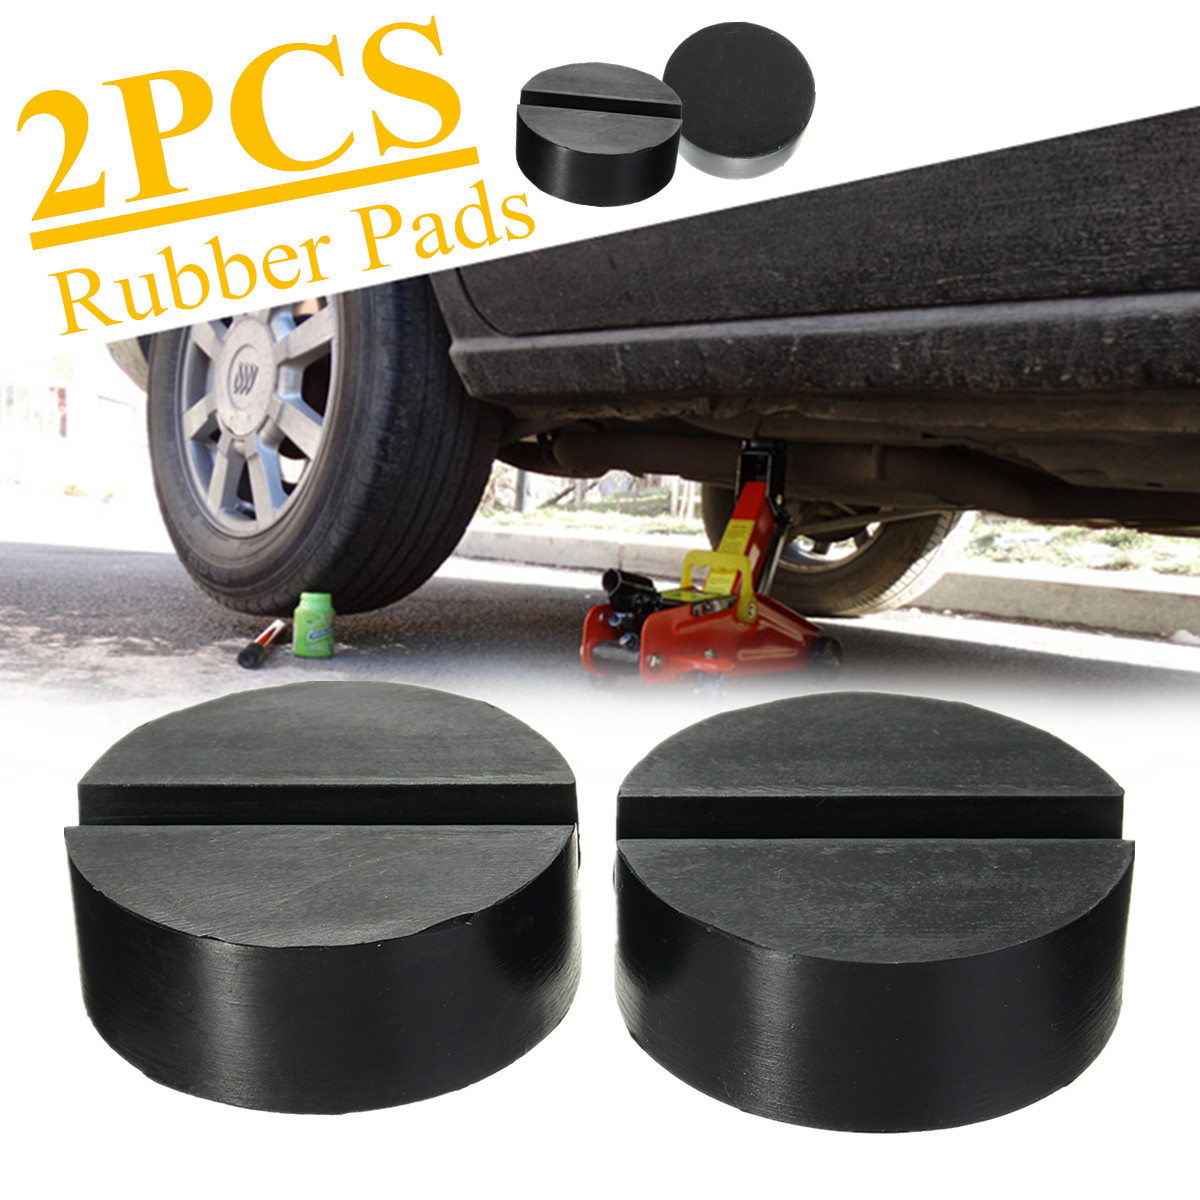 2Pcs Car Lift J Ack Stand Rubber Pads J Ack' Pad Disc Hydraulic Black' Slotted Frame Rail Floor Guard Lift Tool Rubber Pads